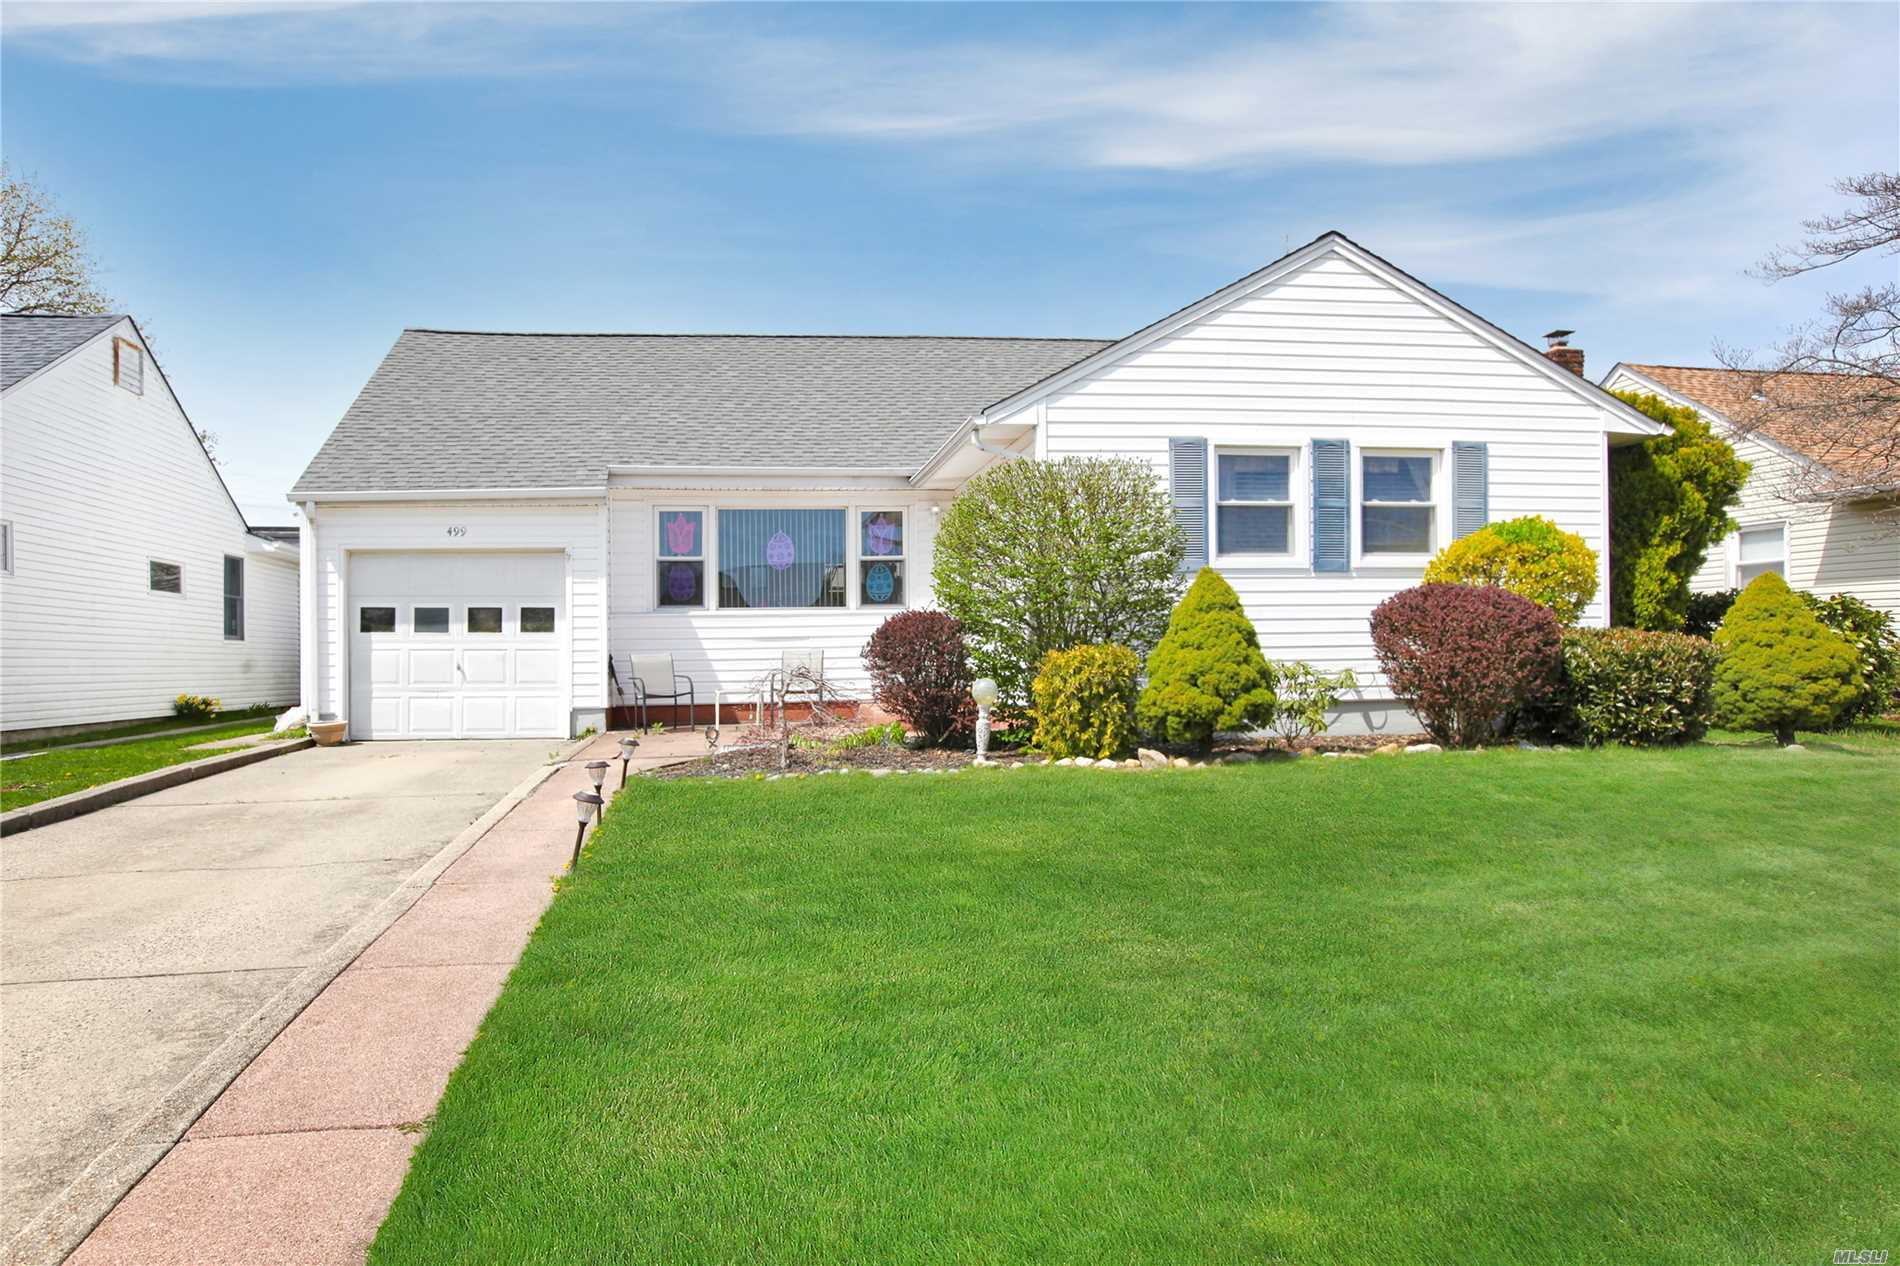 Great Ranch in Bethpage in lovely neighborhood with sidewalks and lamp posts. 3 bedroom 1 bath with full bath in basement as gift. Updated heating system. Roof/siding approx 15 years old. MOTIVATED SELLER!!